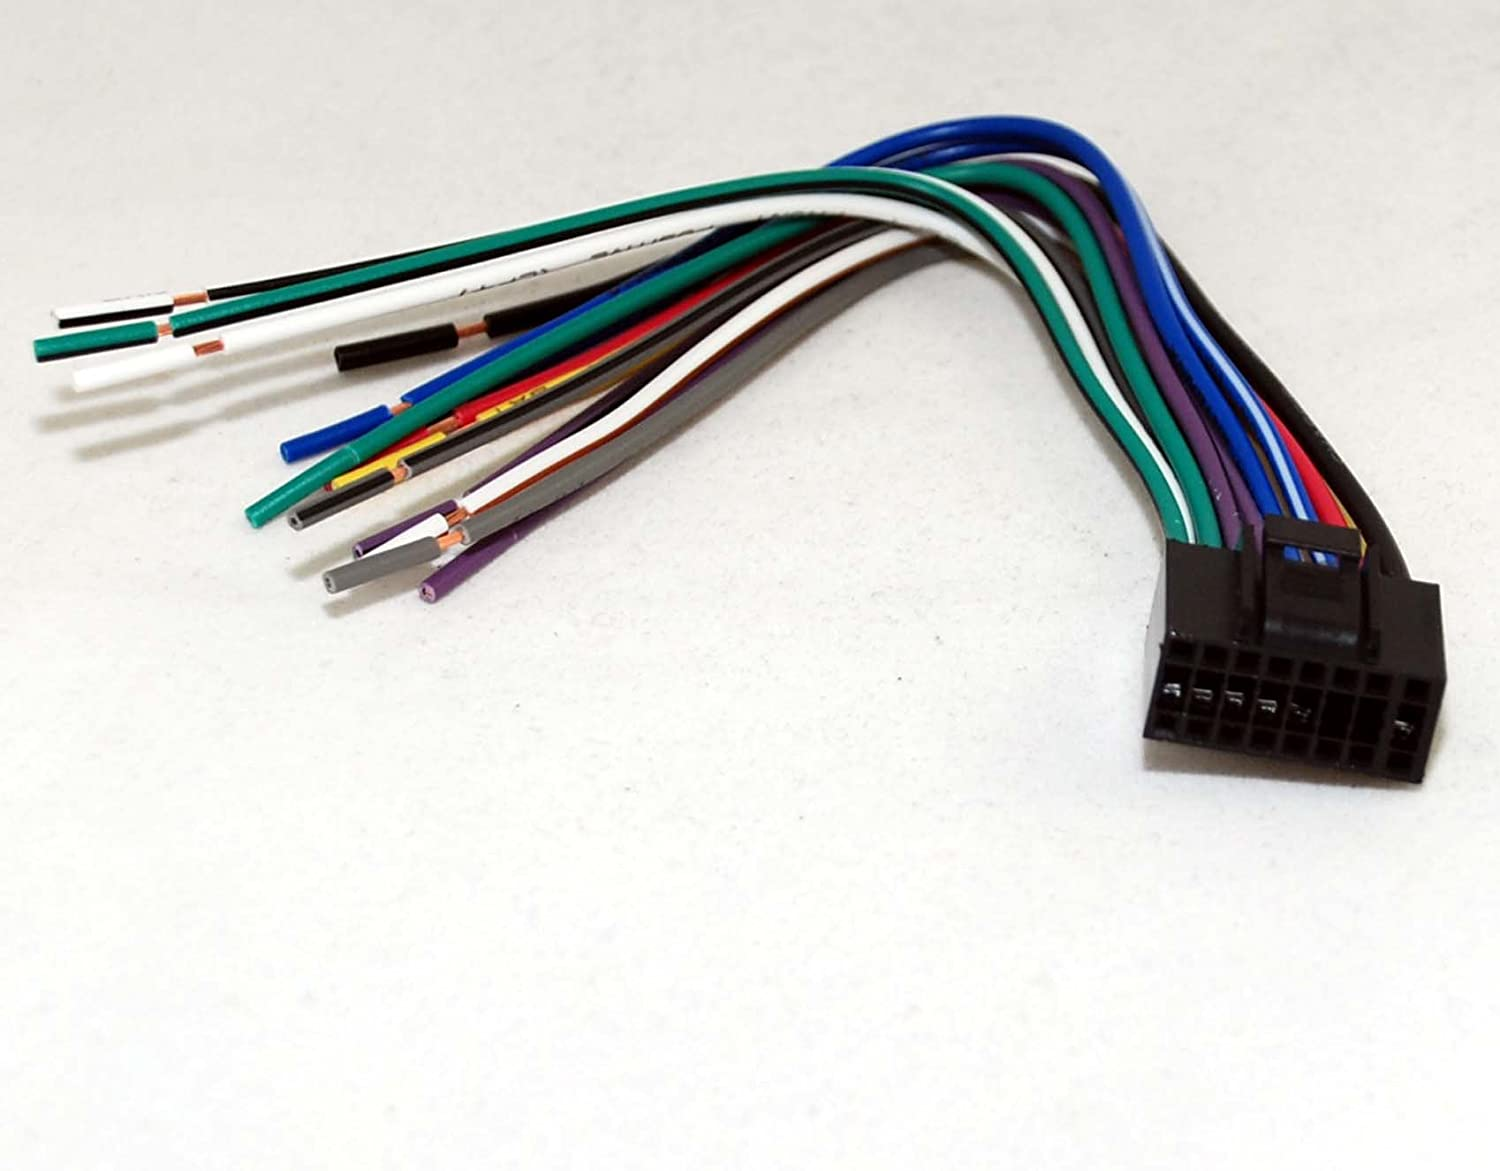 61Rzeblbo0L._SL1500_ amazon com xtenzi harness for dual 16 pin wire harness xdvd8181 dual xdvd256bt wiring harness at fashall.co